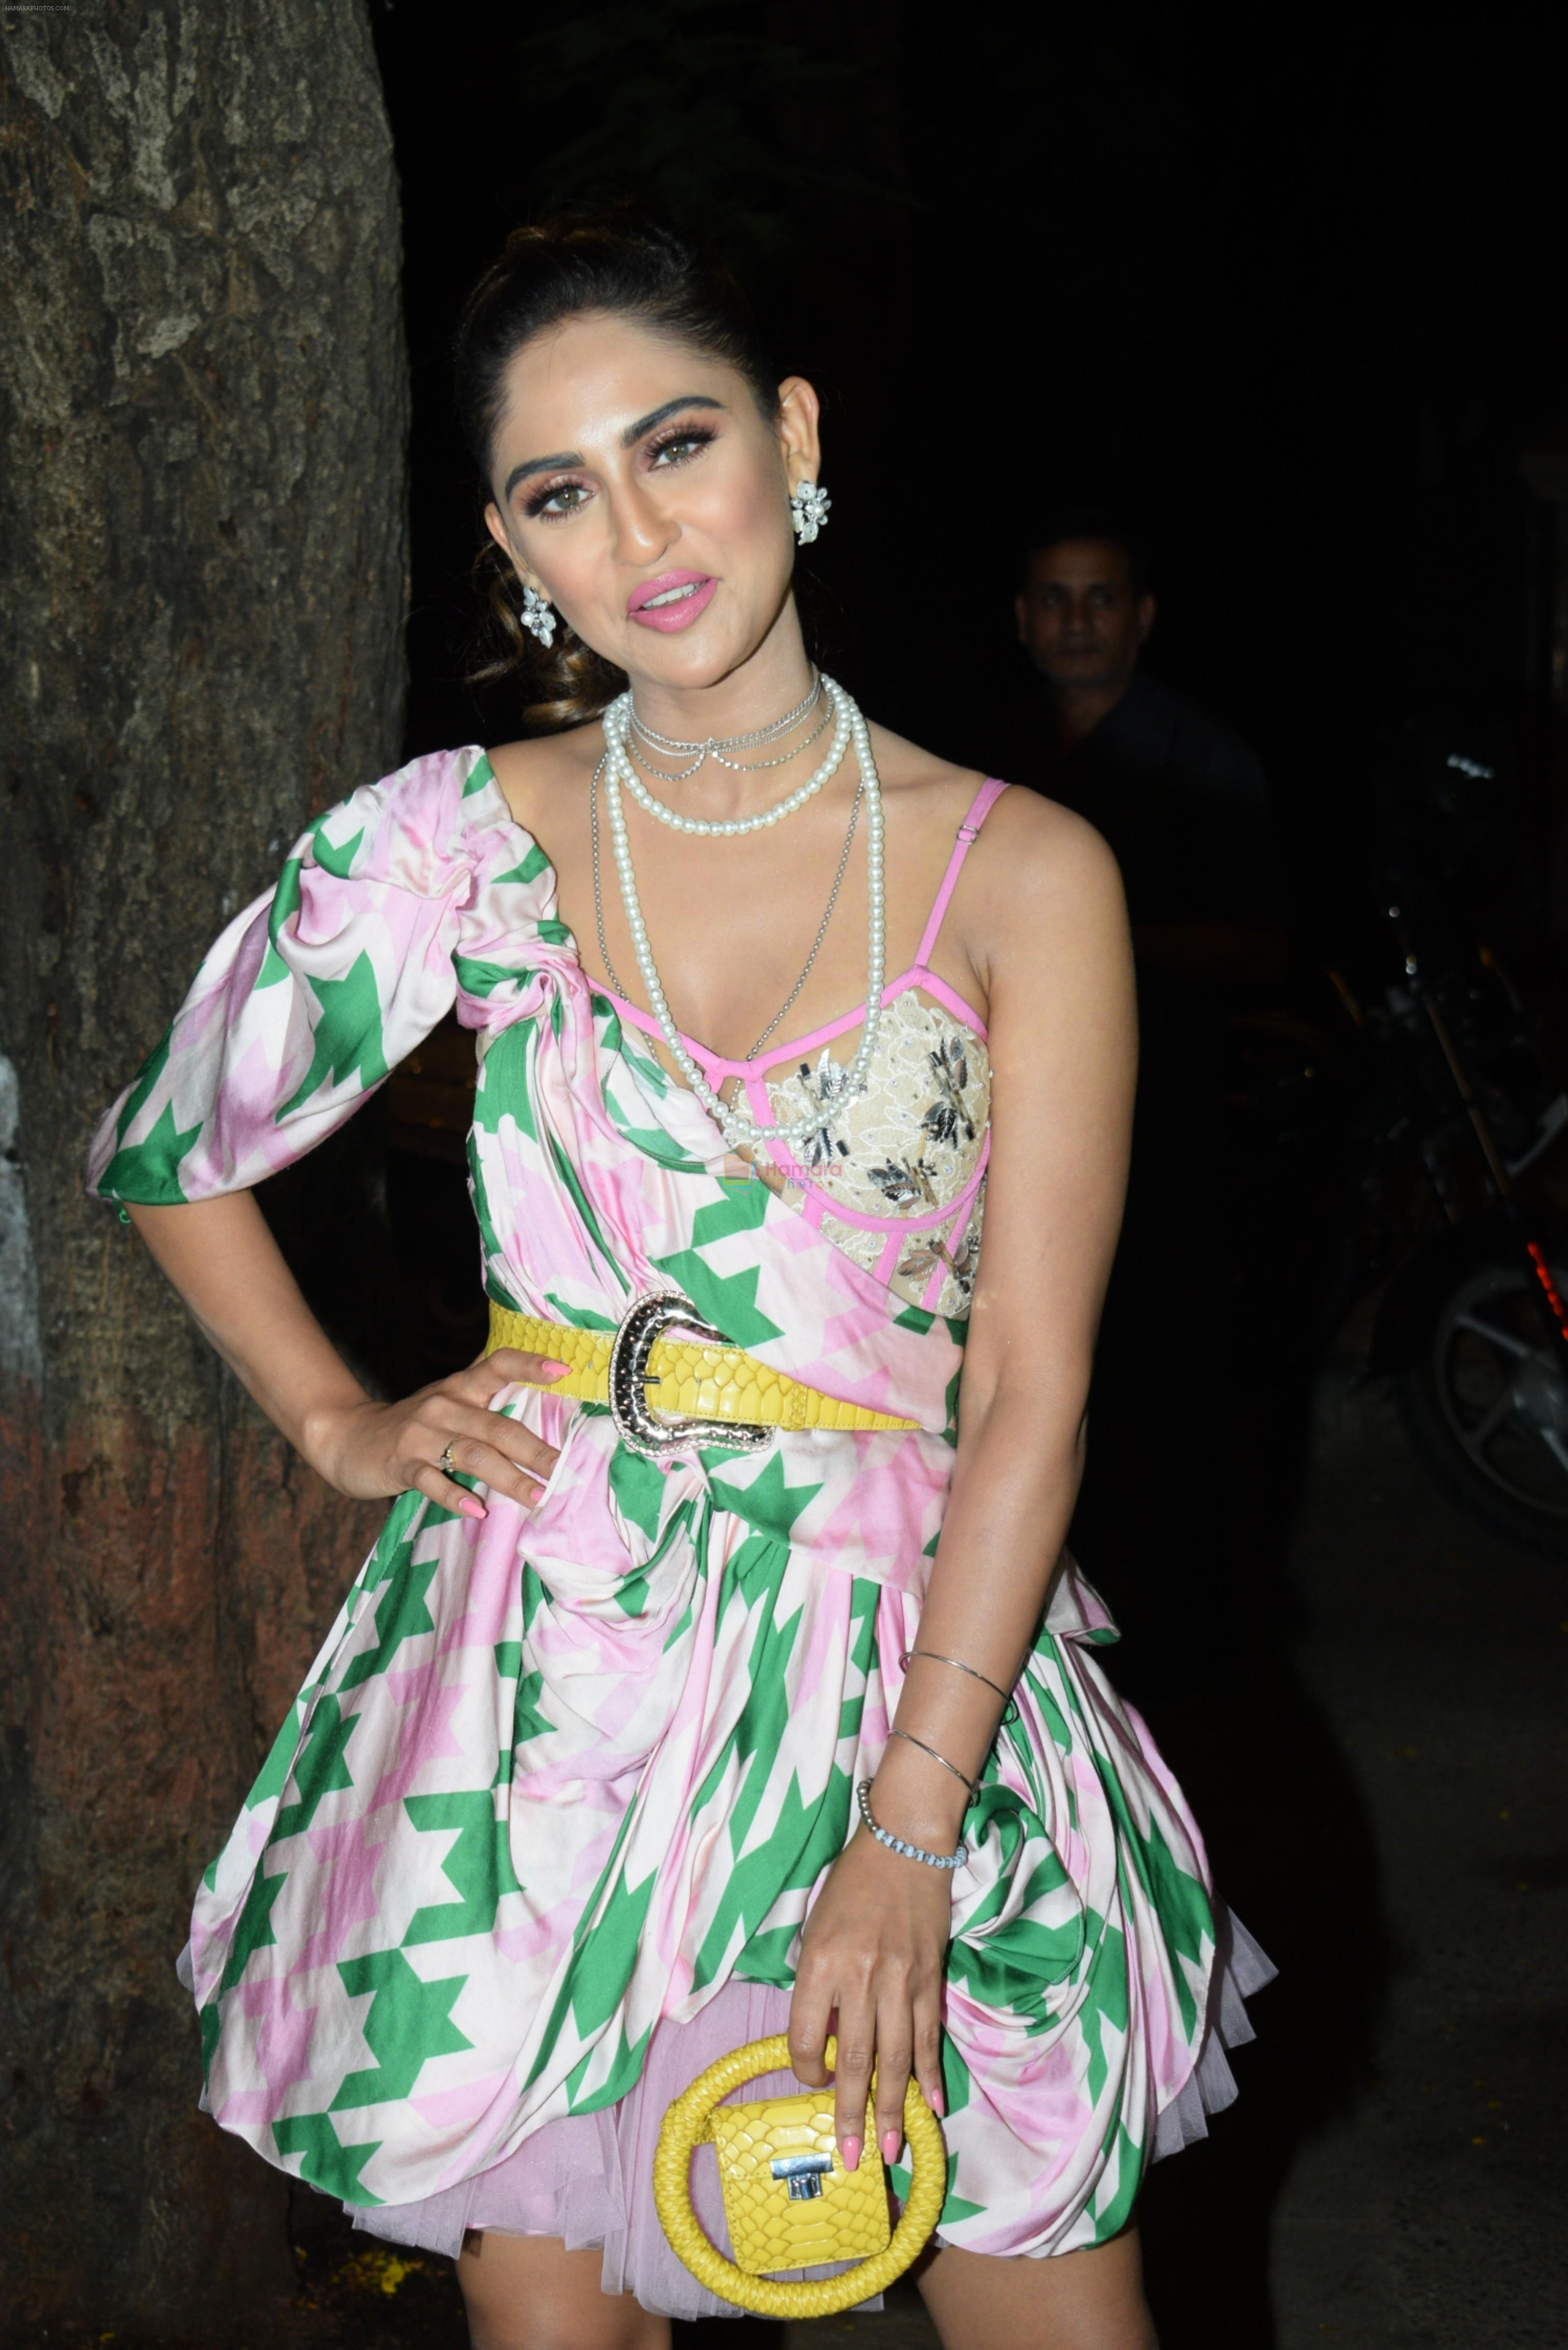 Krystal D Souza at Ekta Kapoor's birthday party at her residence in juhu on 9th June 2019